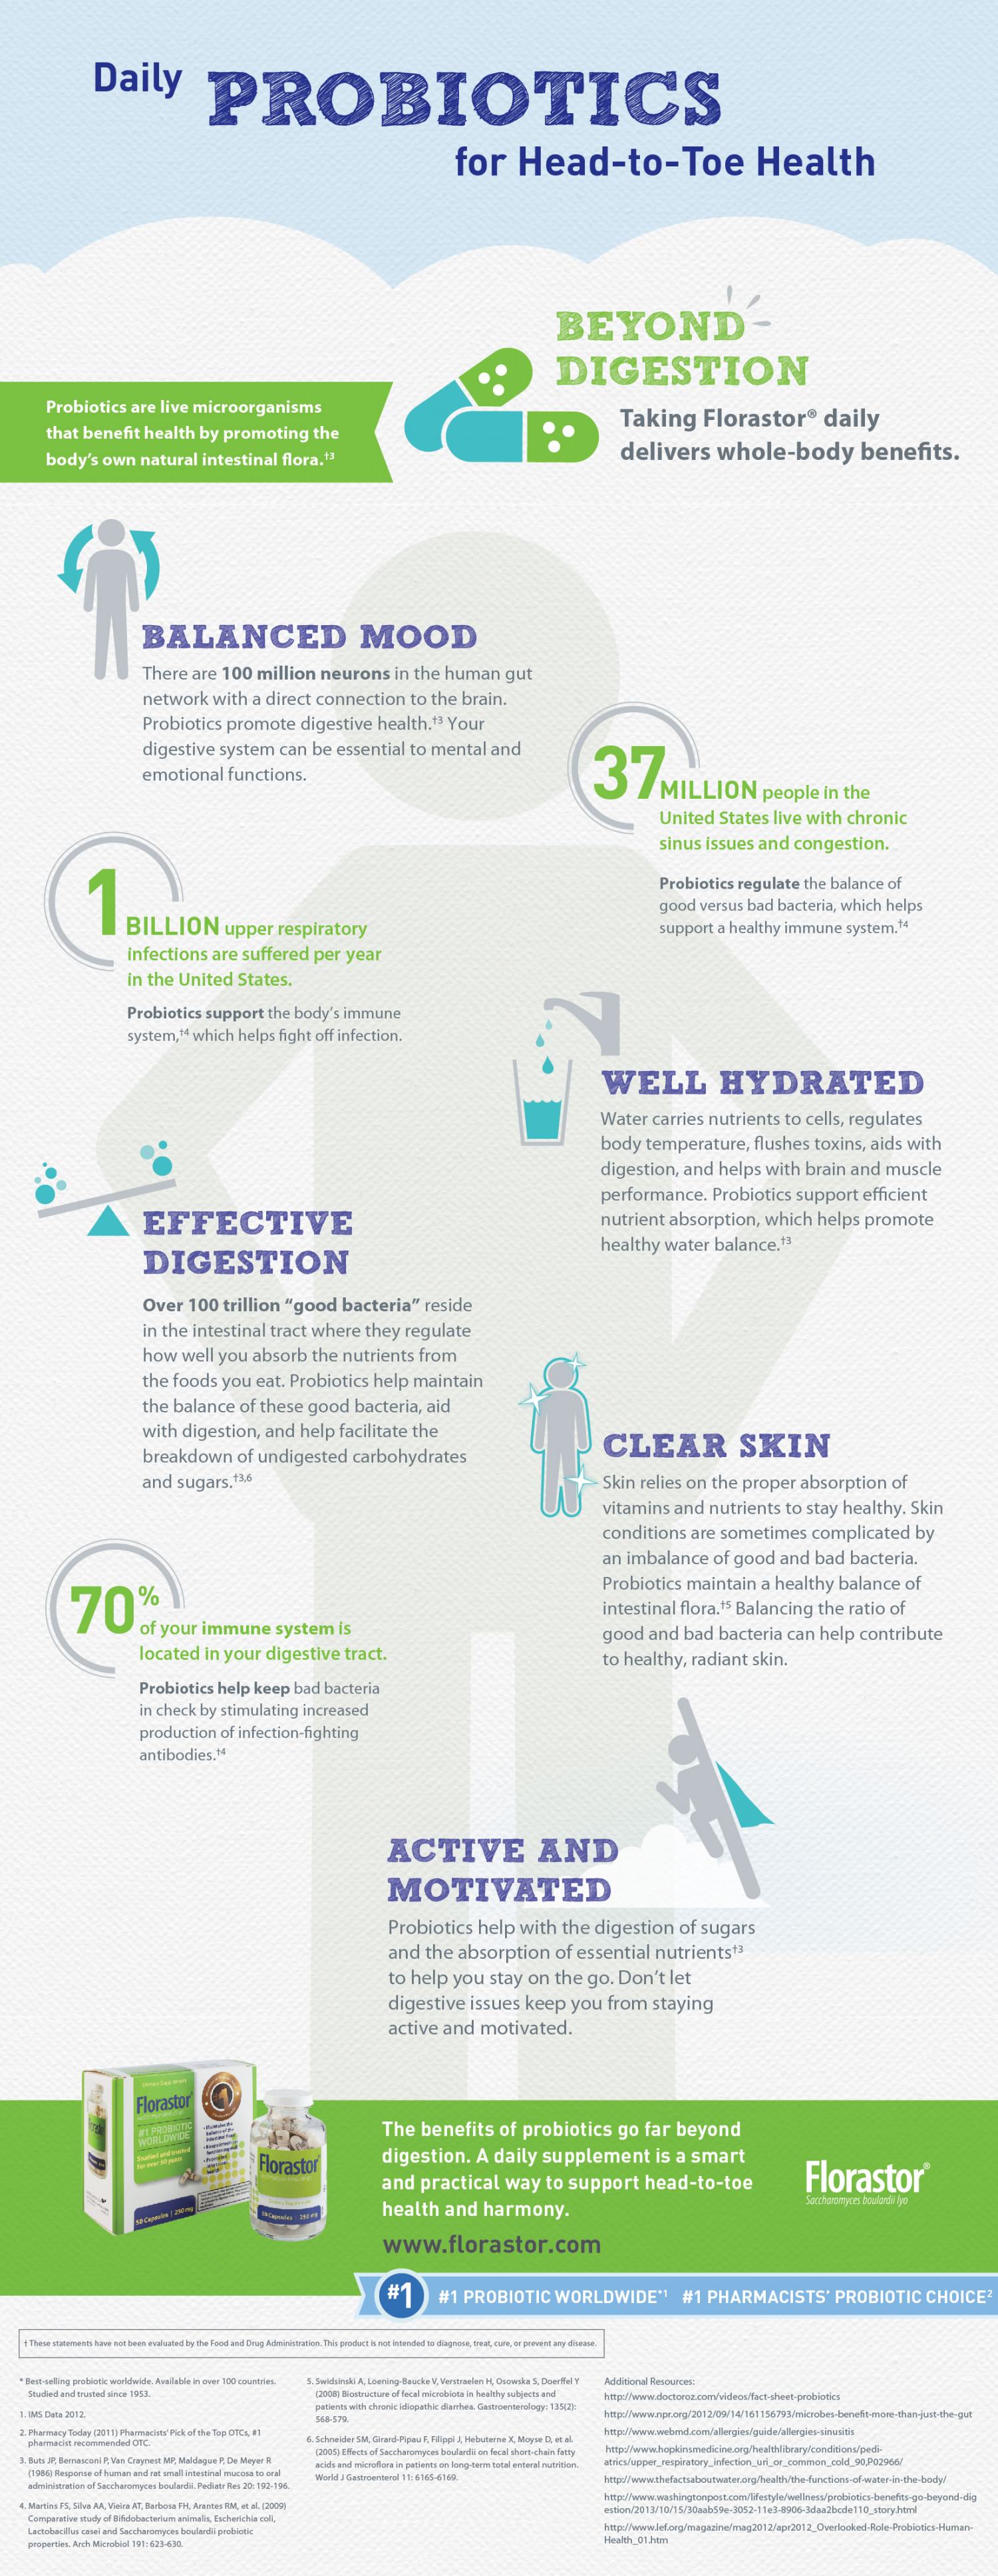 Daily Probiotics for Head-to-Toe Health Infographic